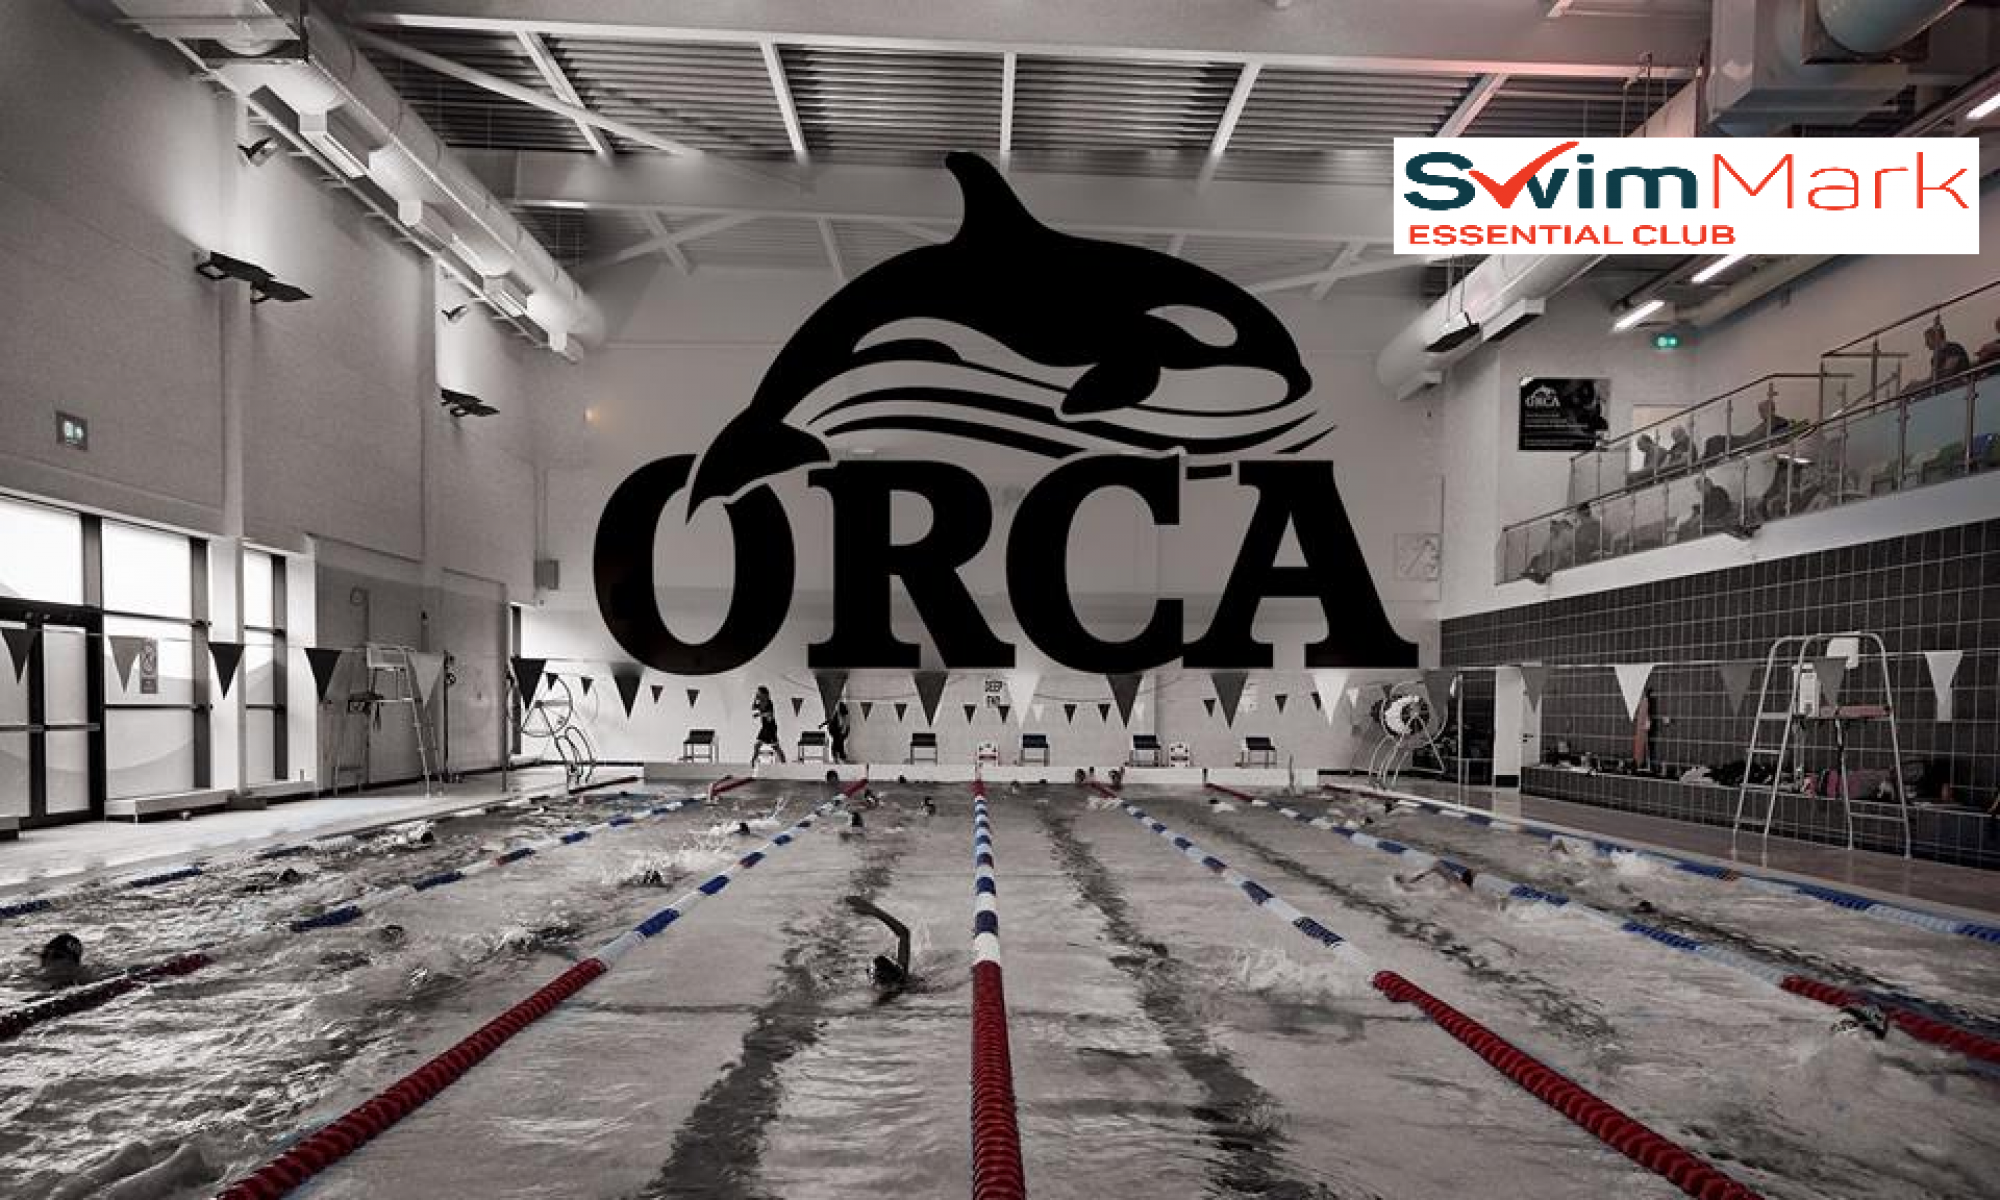 ORCA Swimming Club